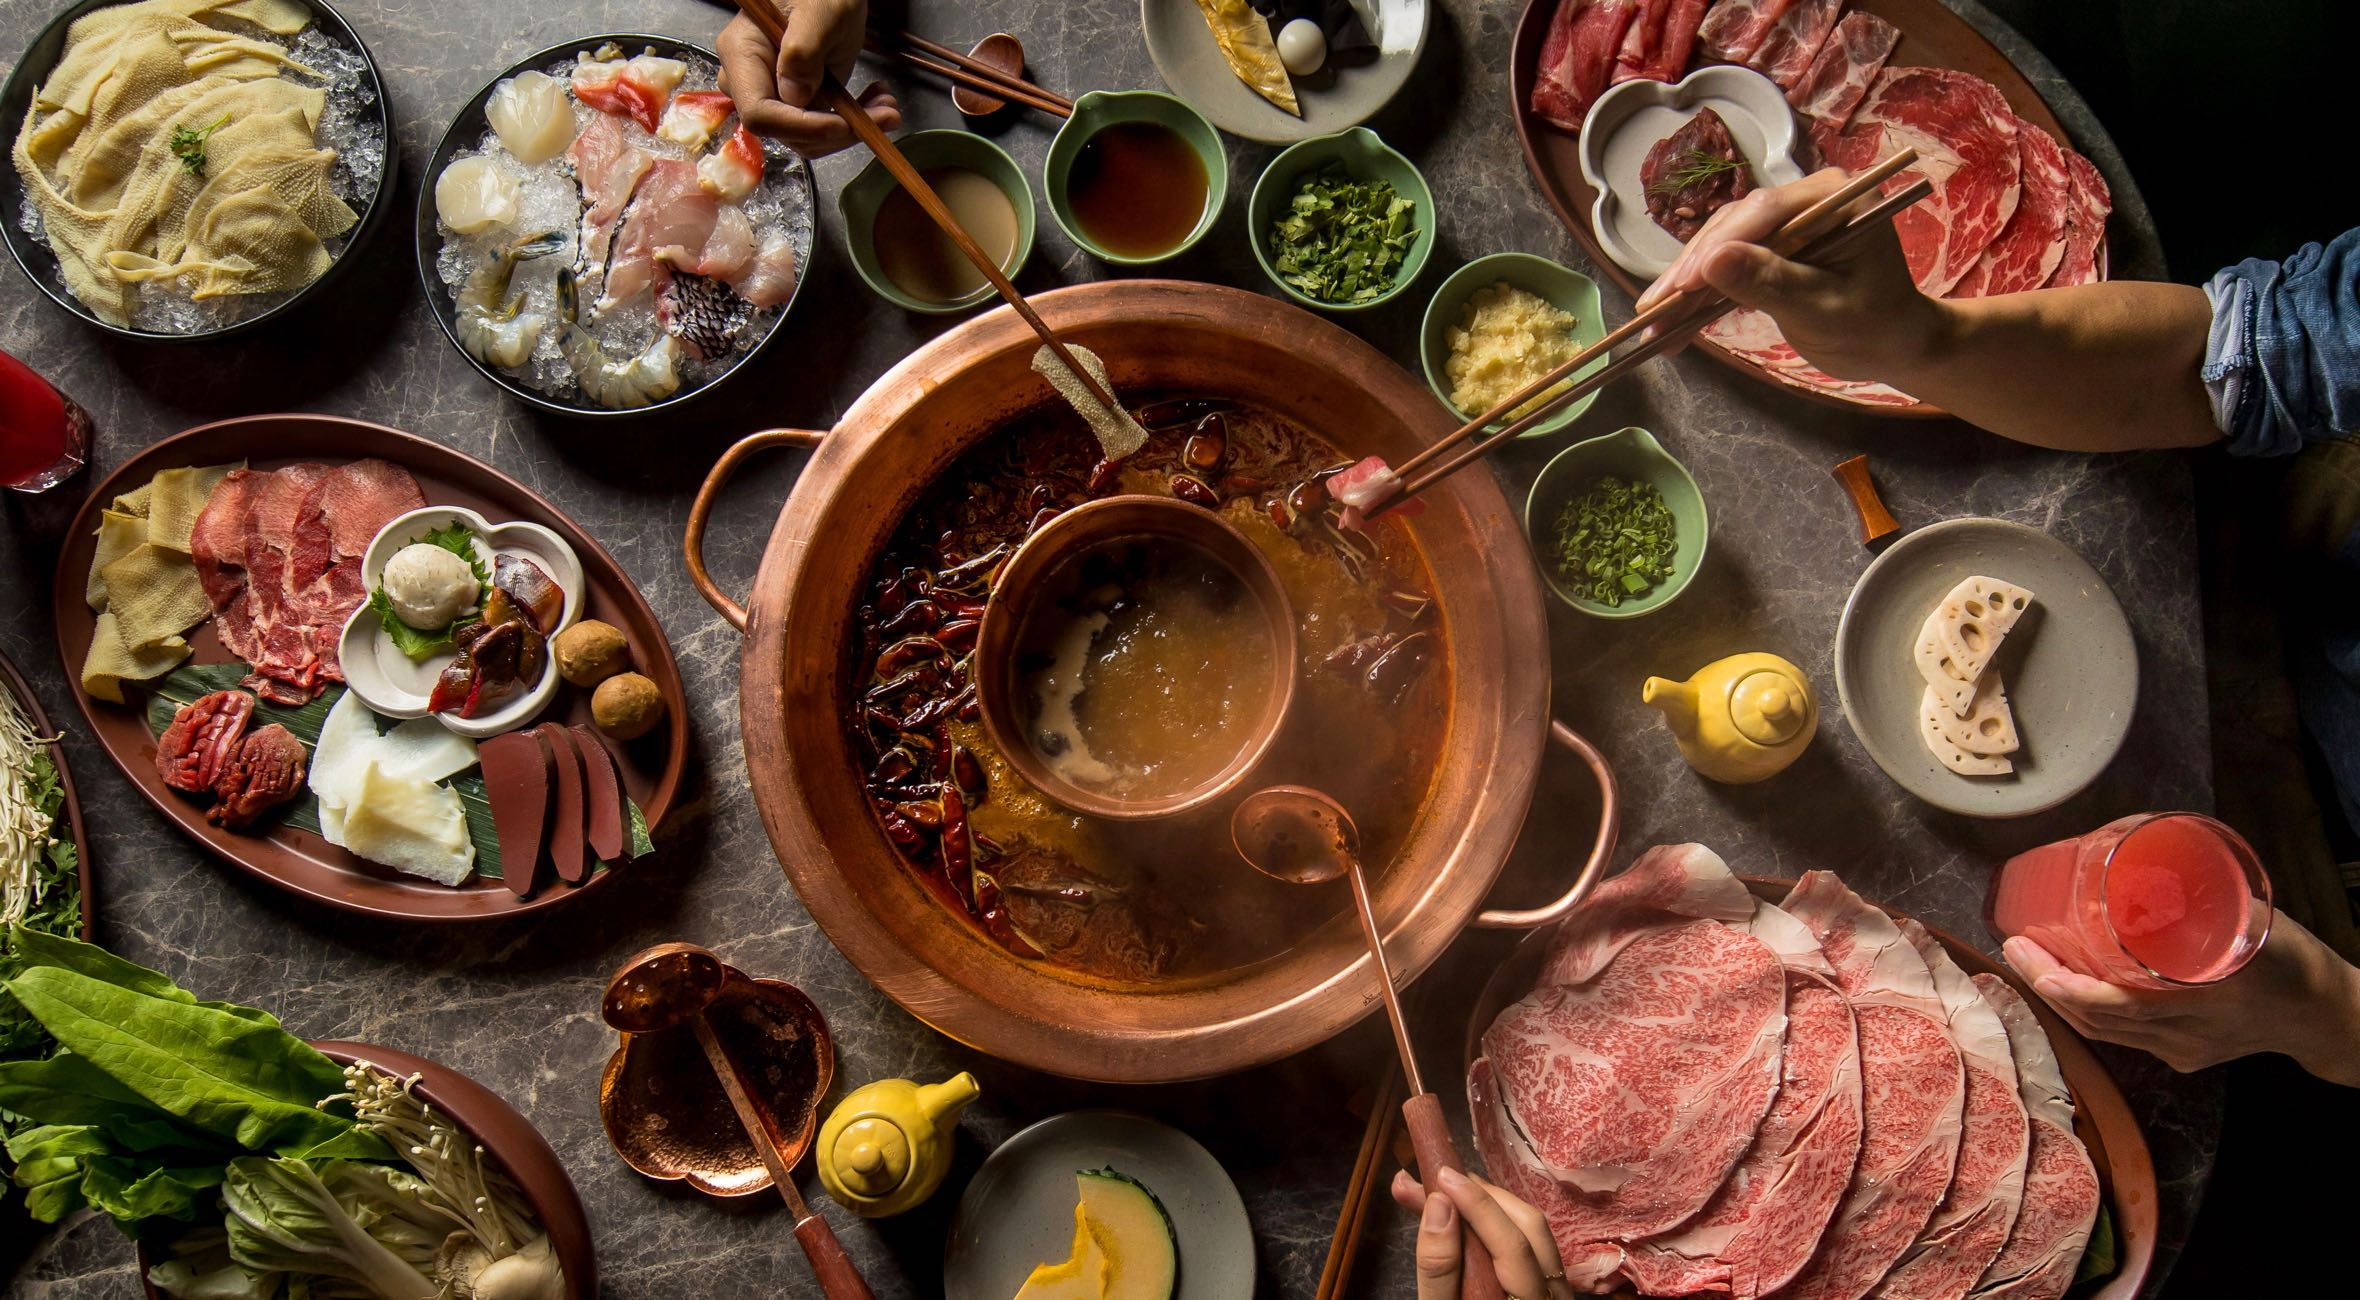 Authentic Chinese Hotpot for 2 People at Tang Hotpot in Chinatown – Awarded the Michelin 2019 Bib Gourmand Status